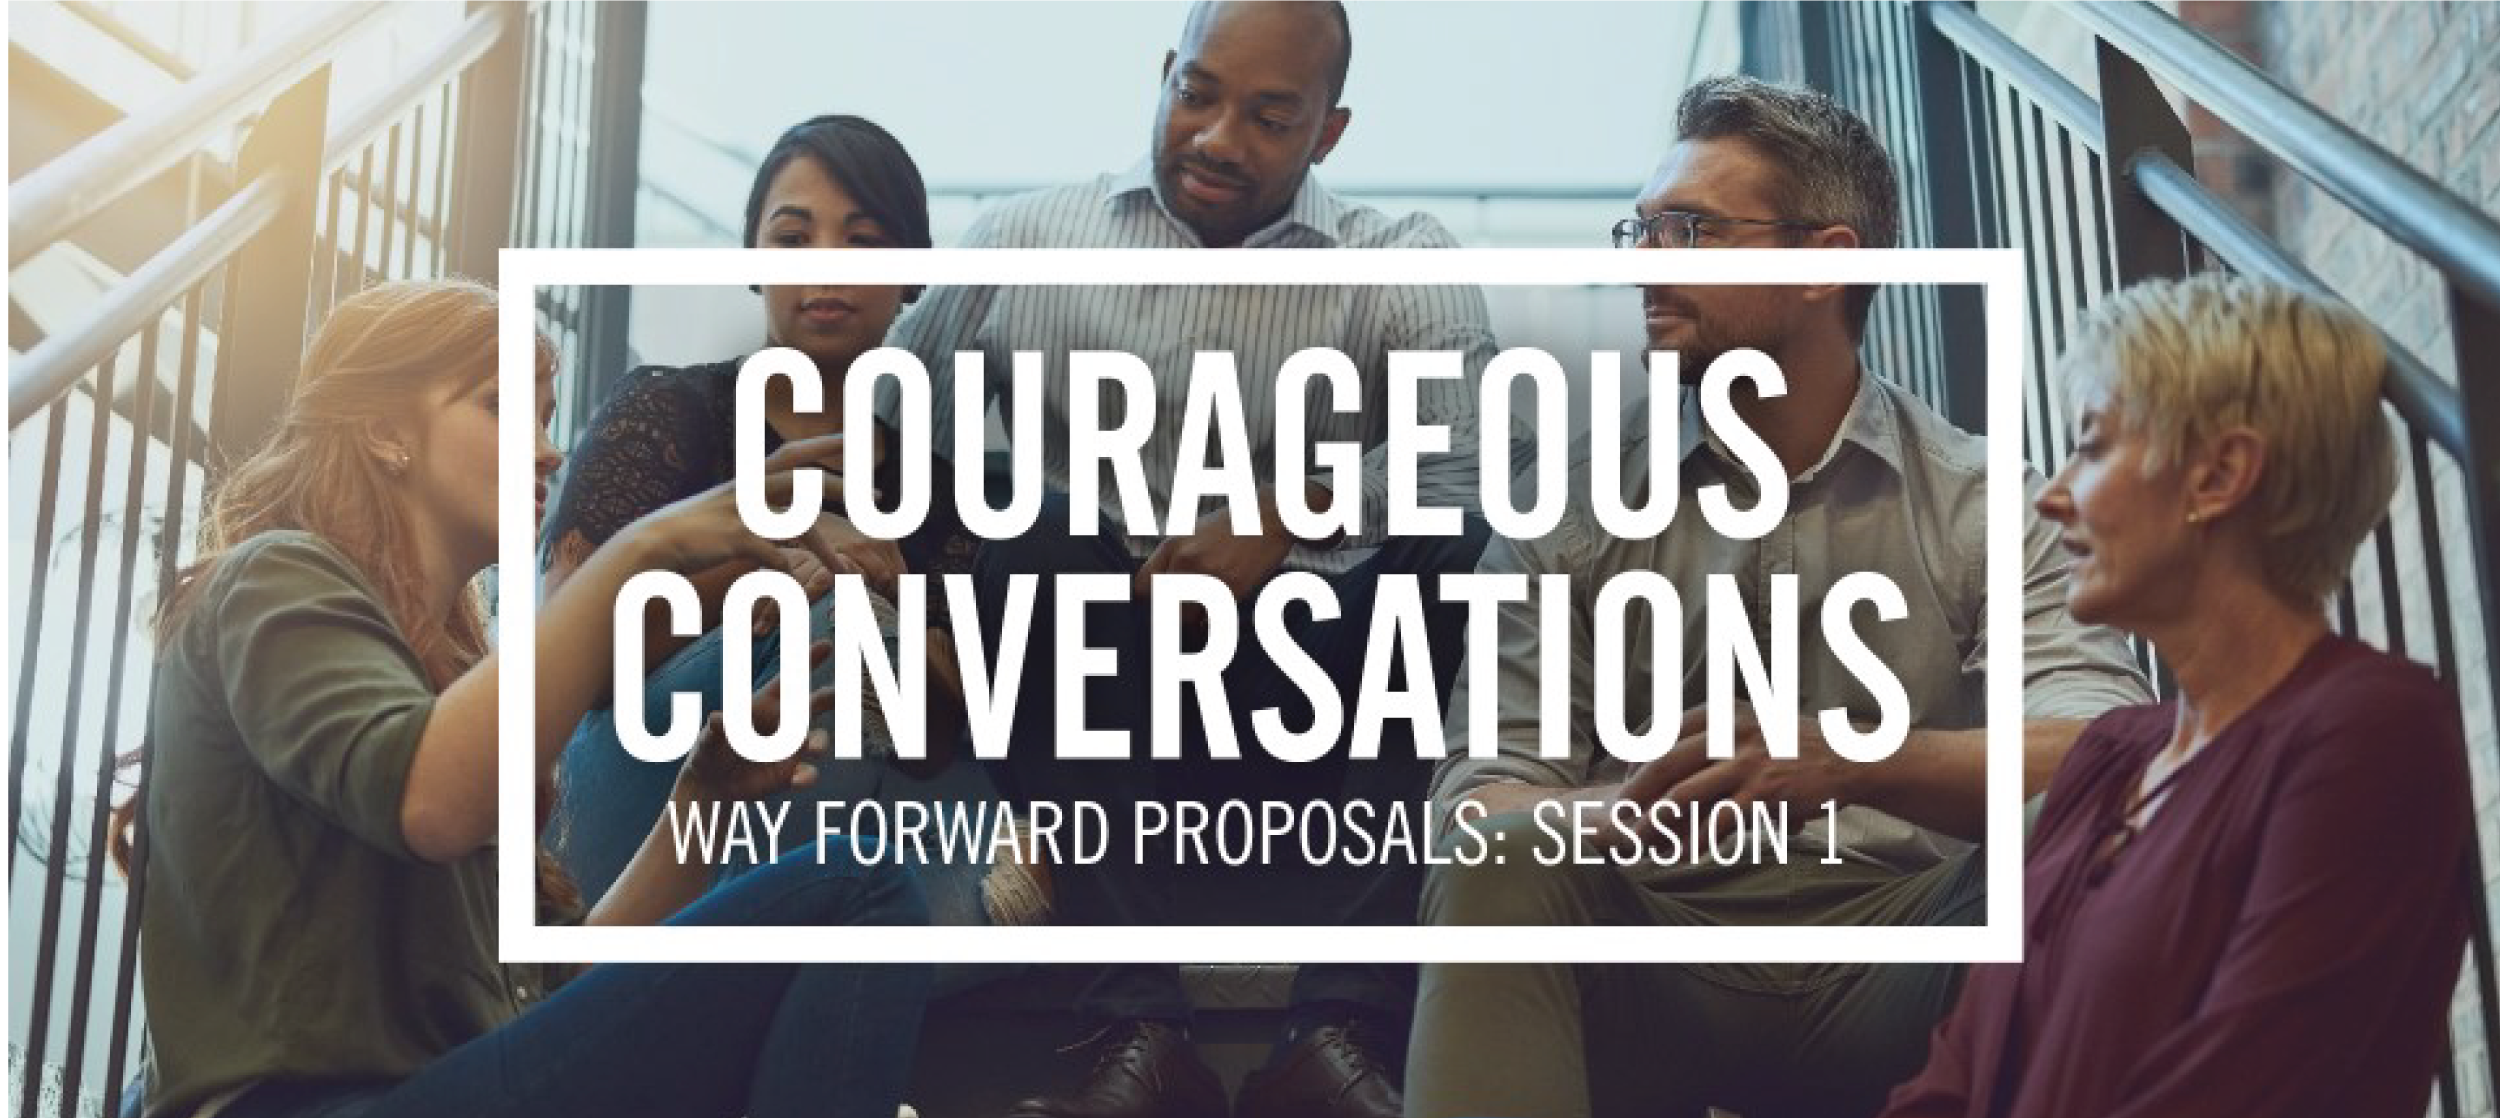 Courageous Conversation about the Way Forward